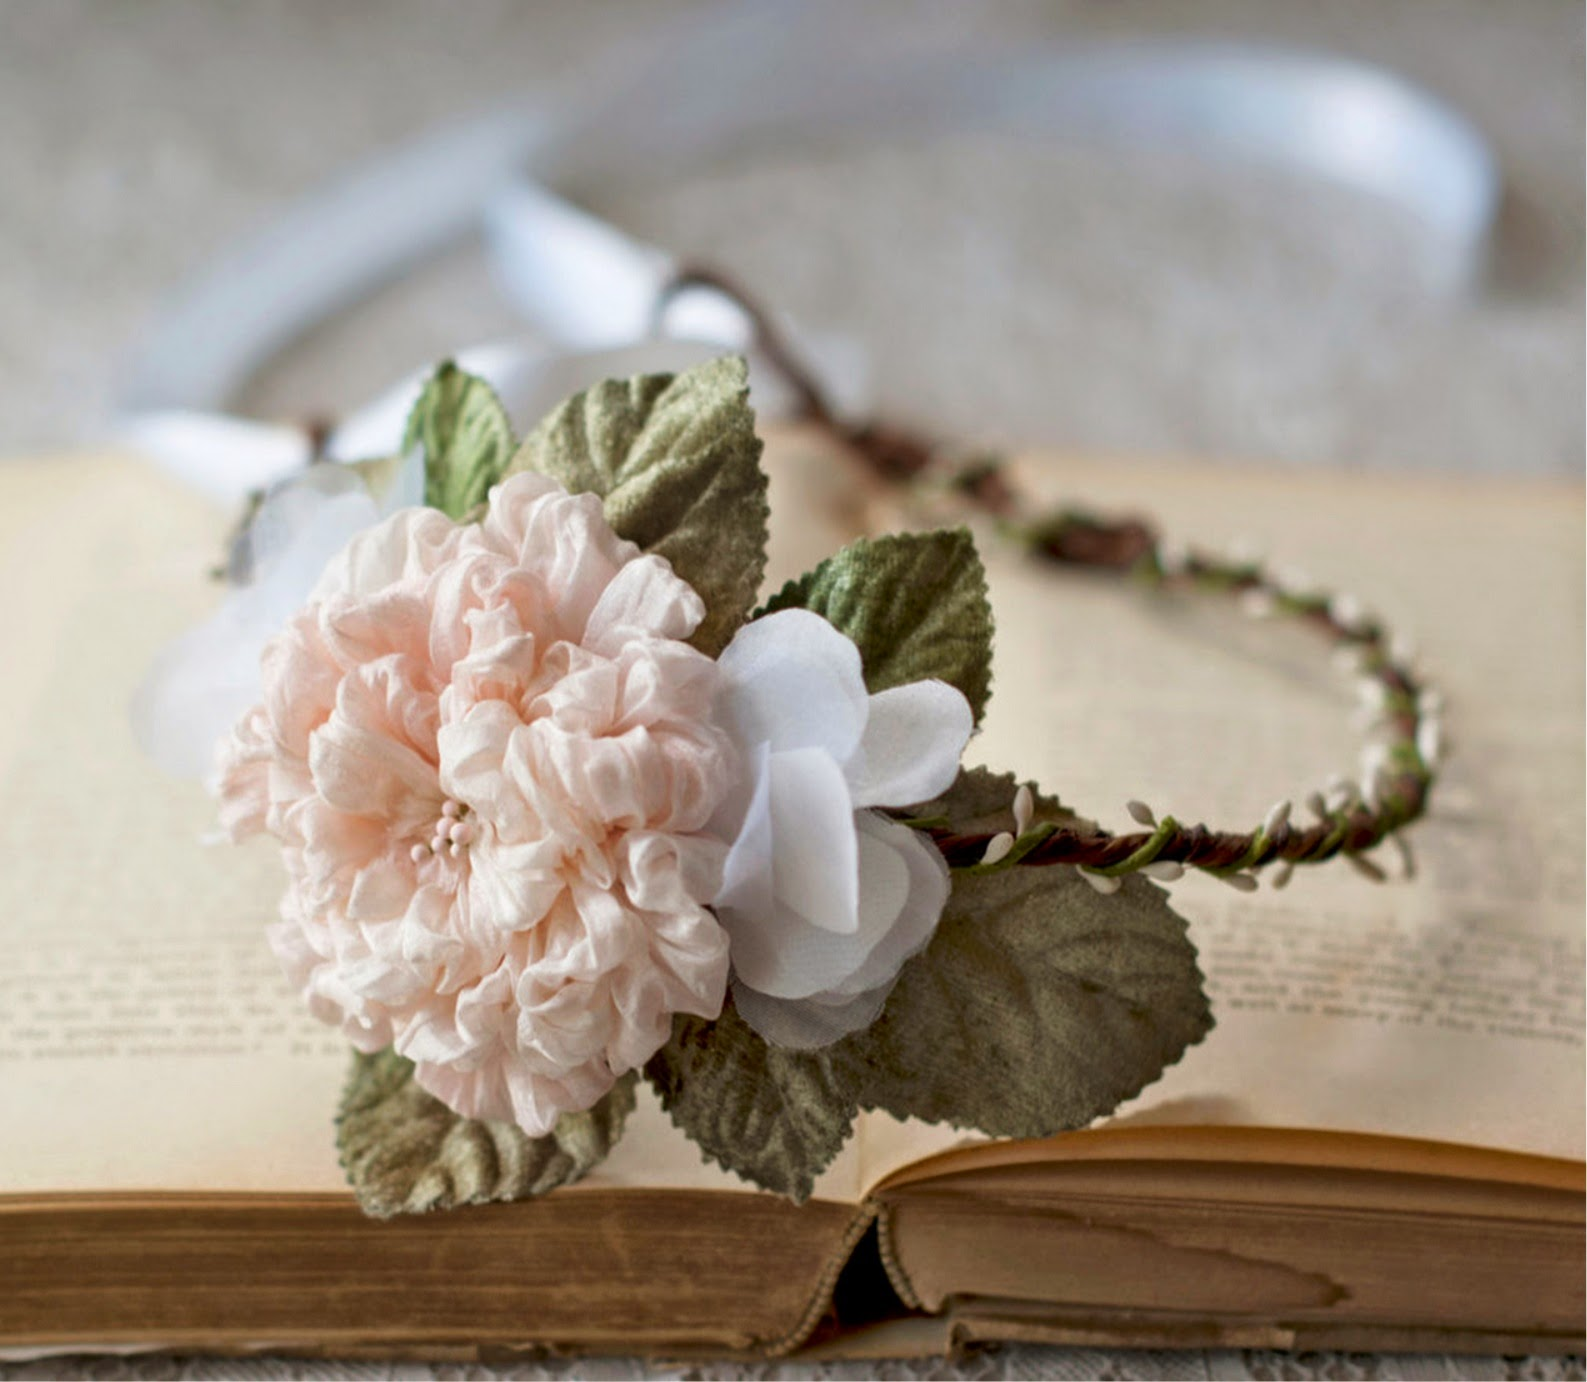 https://www.zibbet.com/foreverhookeddesign/silk-bridal-flower-crown-blush-peach-rose-hair-circlet-rustic-woodland-boho-wedding-head-wreath-floral-white-halo-hair-accessories